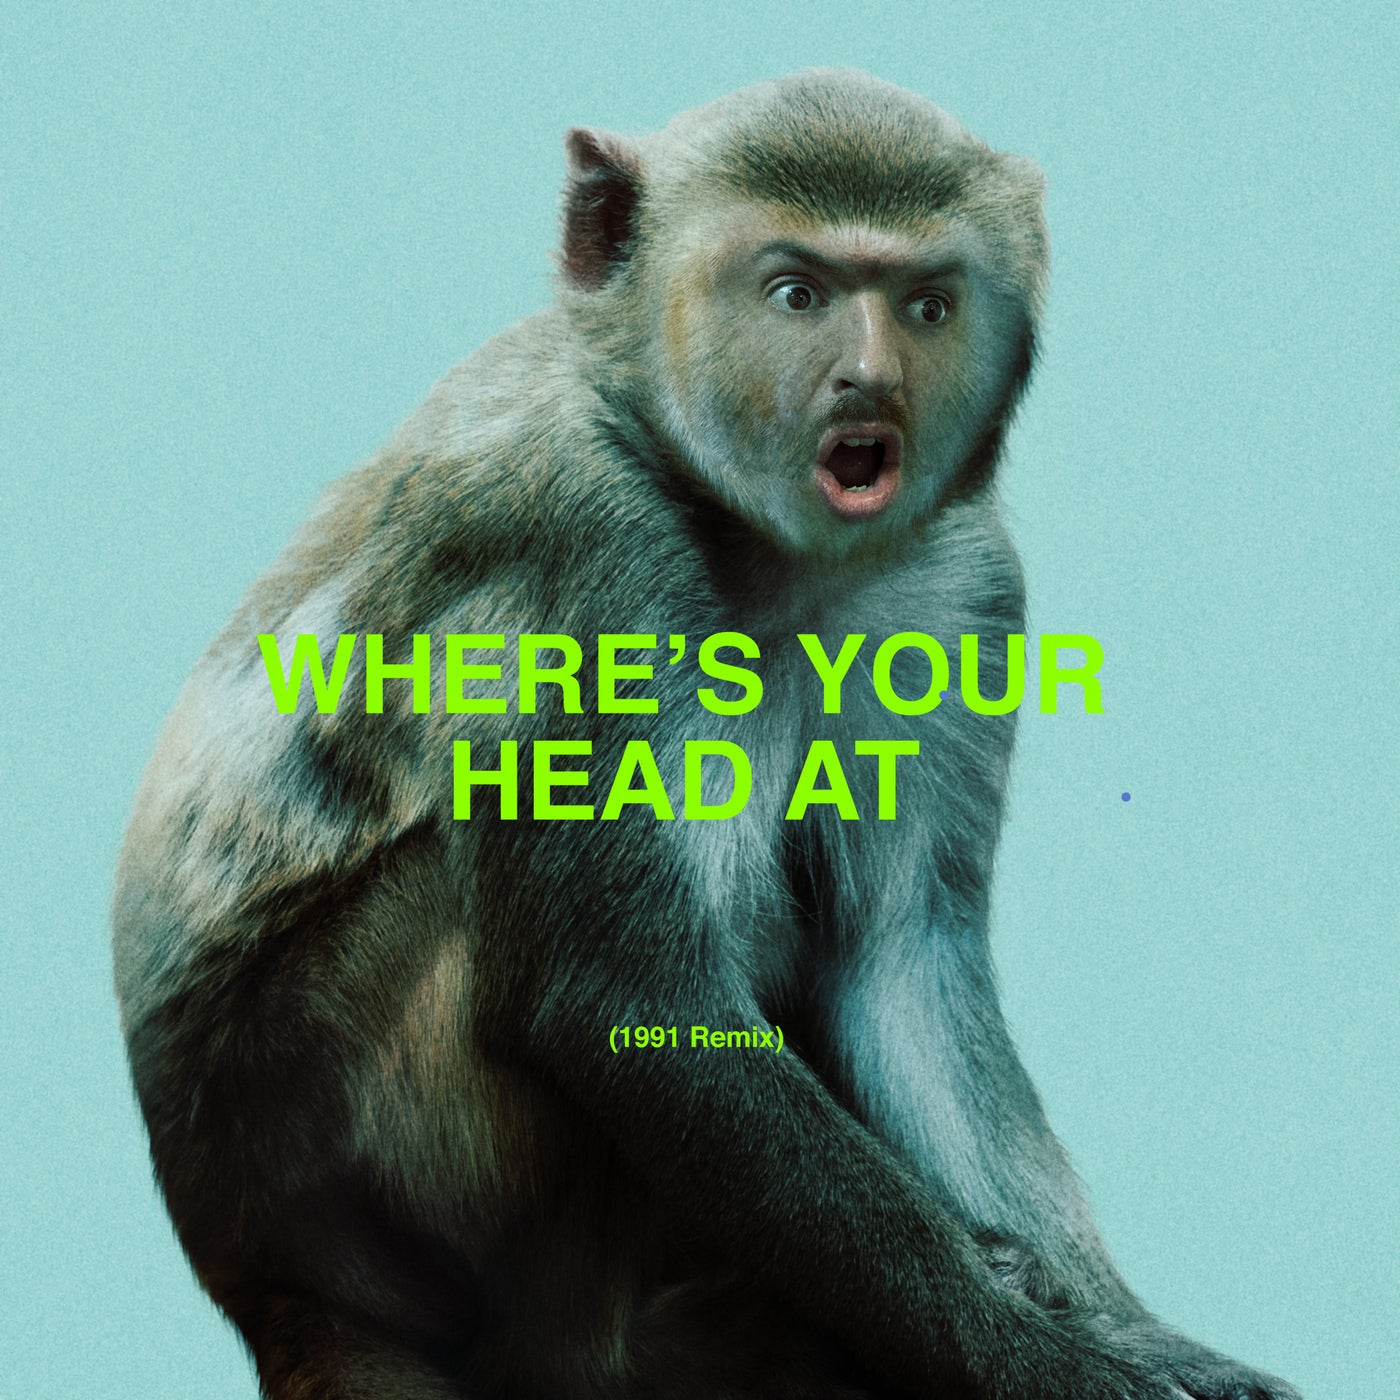 Where's Your Head At (1991 Remix)